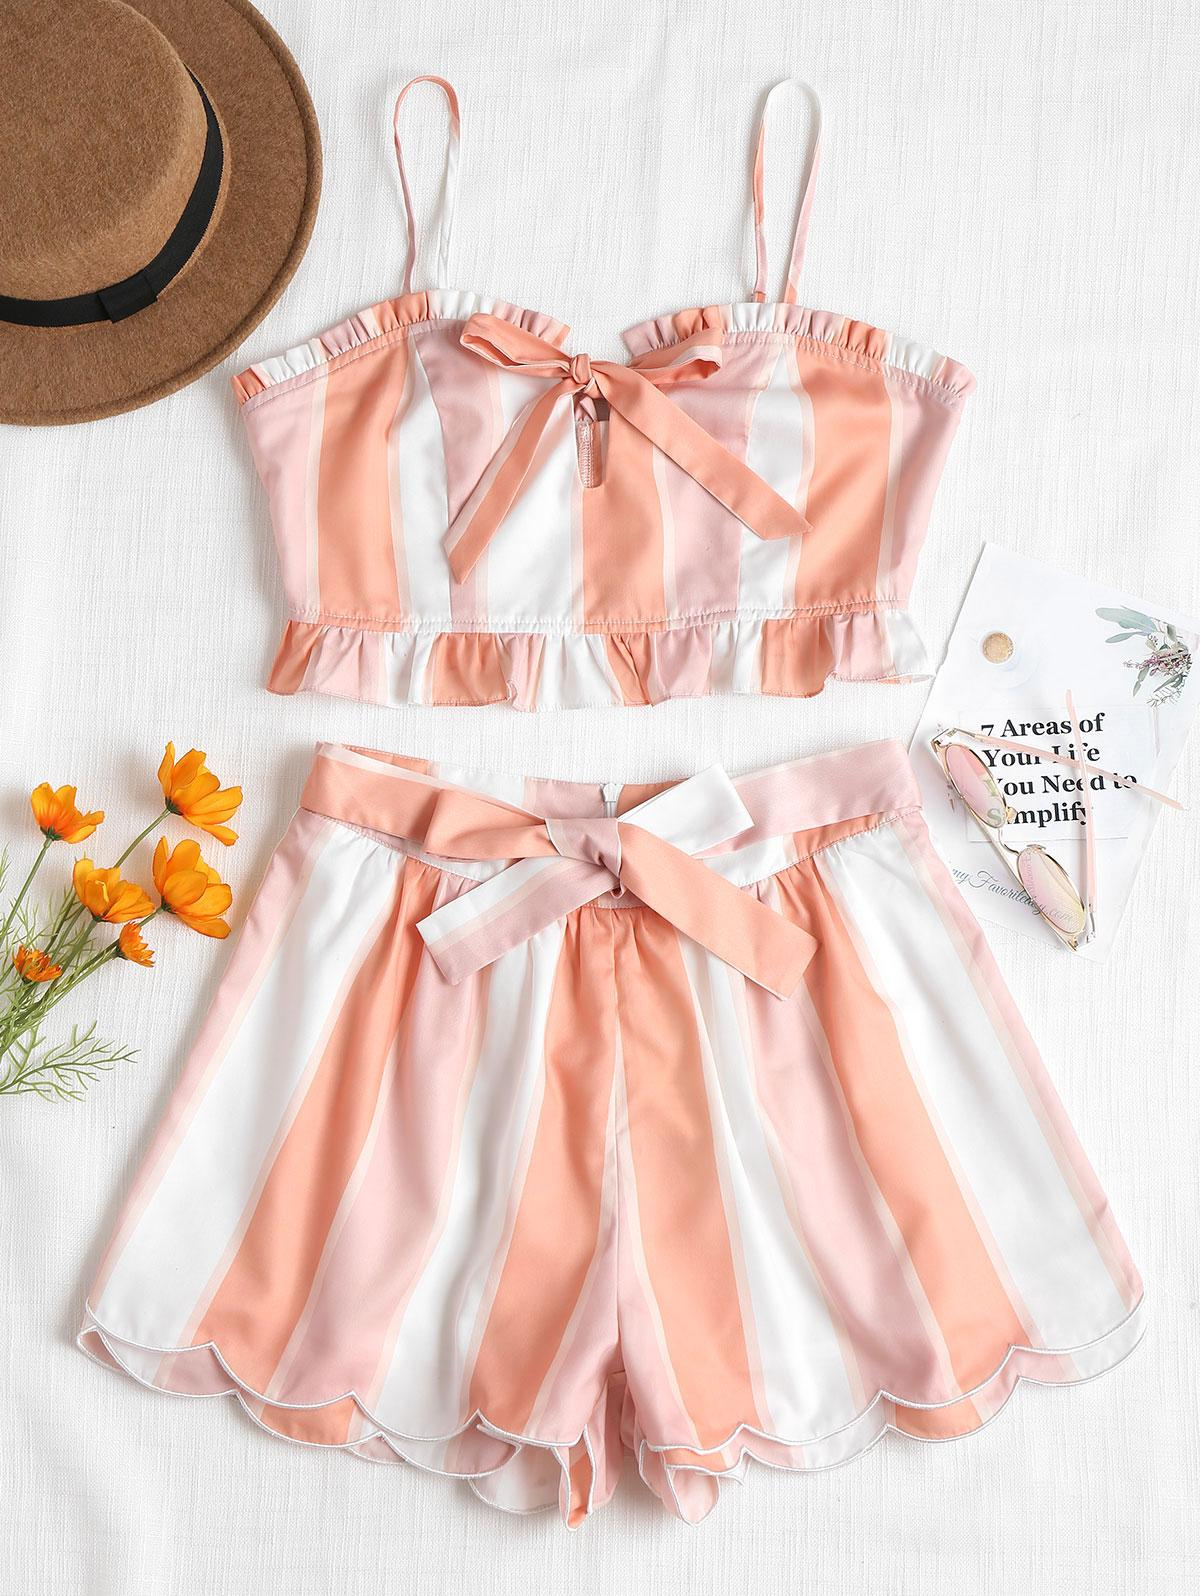 84c4a09de4868 STYLE Bow Knot Stripe Cropped Top Scalloped High Waist Shorts Ruffles  Halter Strap Camis Zip Up Hem Mini Shorts Beach Suit From Hermanw